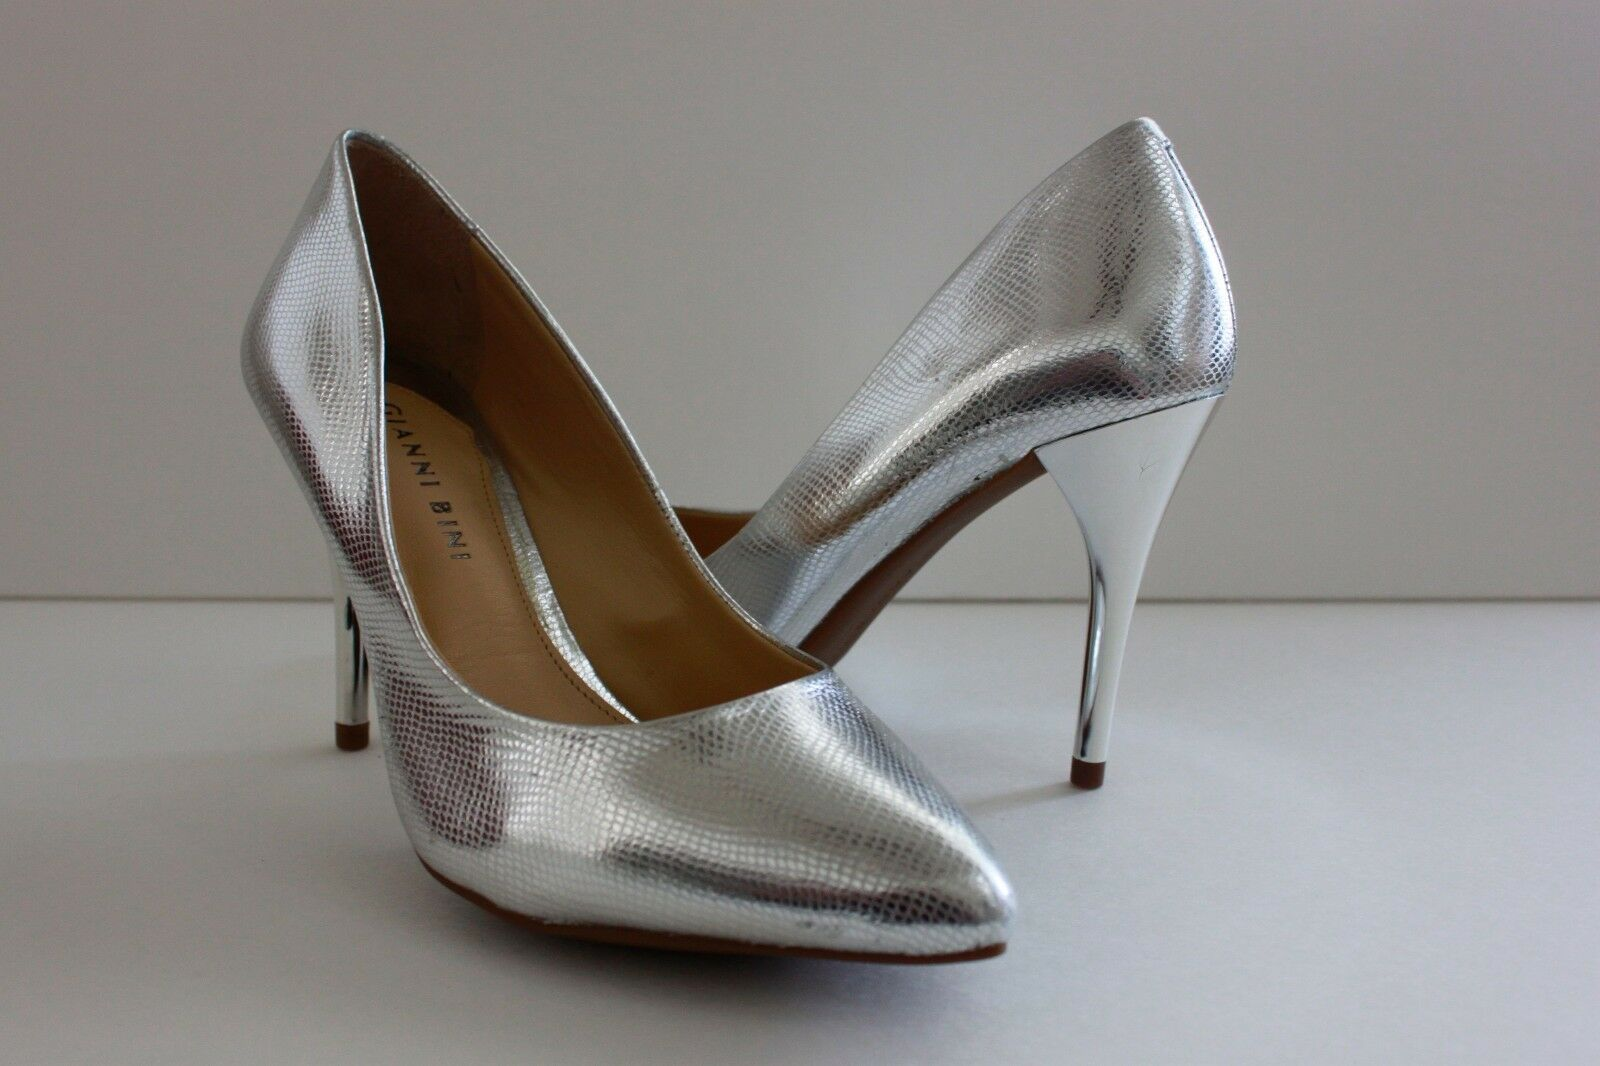 Gianni Bini Womens Heels Silver Shoe Size 6.5 M Silver Heels Leather Snake Pointed Toe Pumps 5f1af2